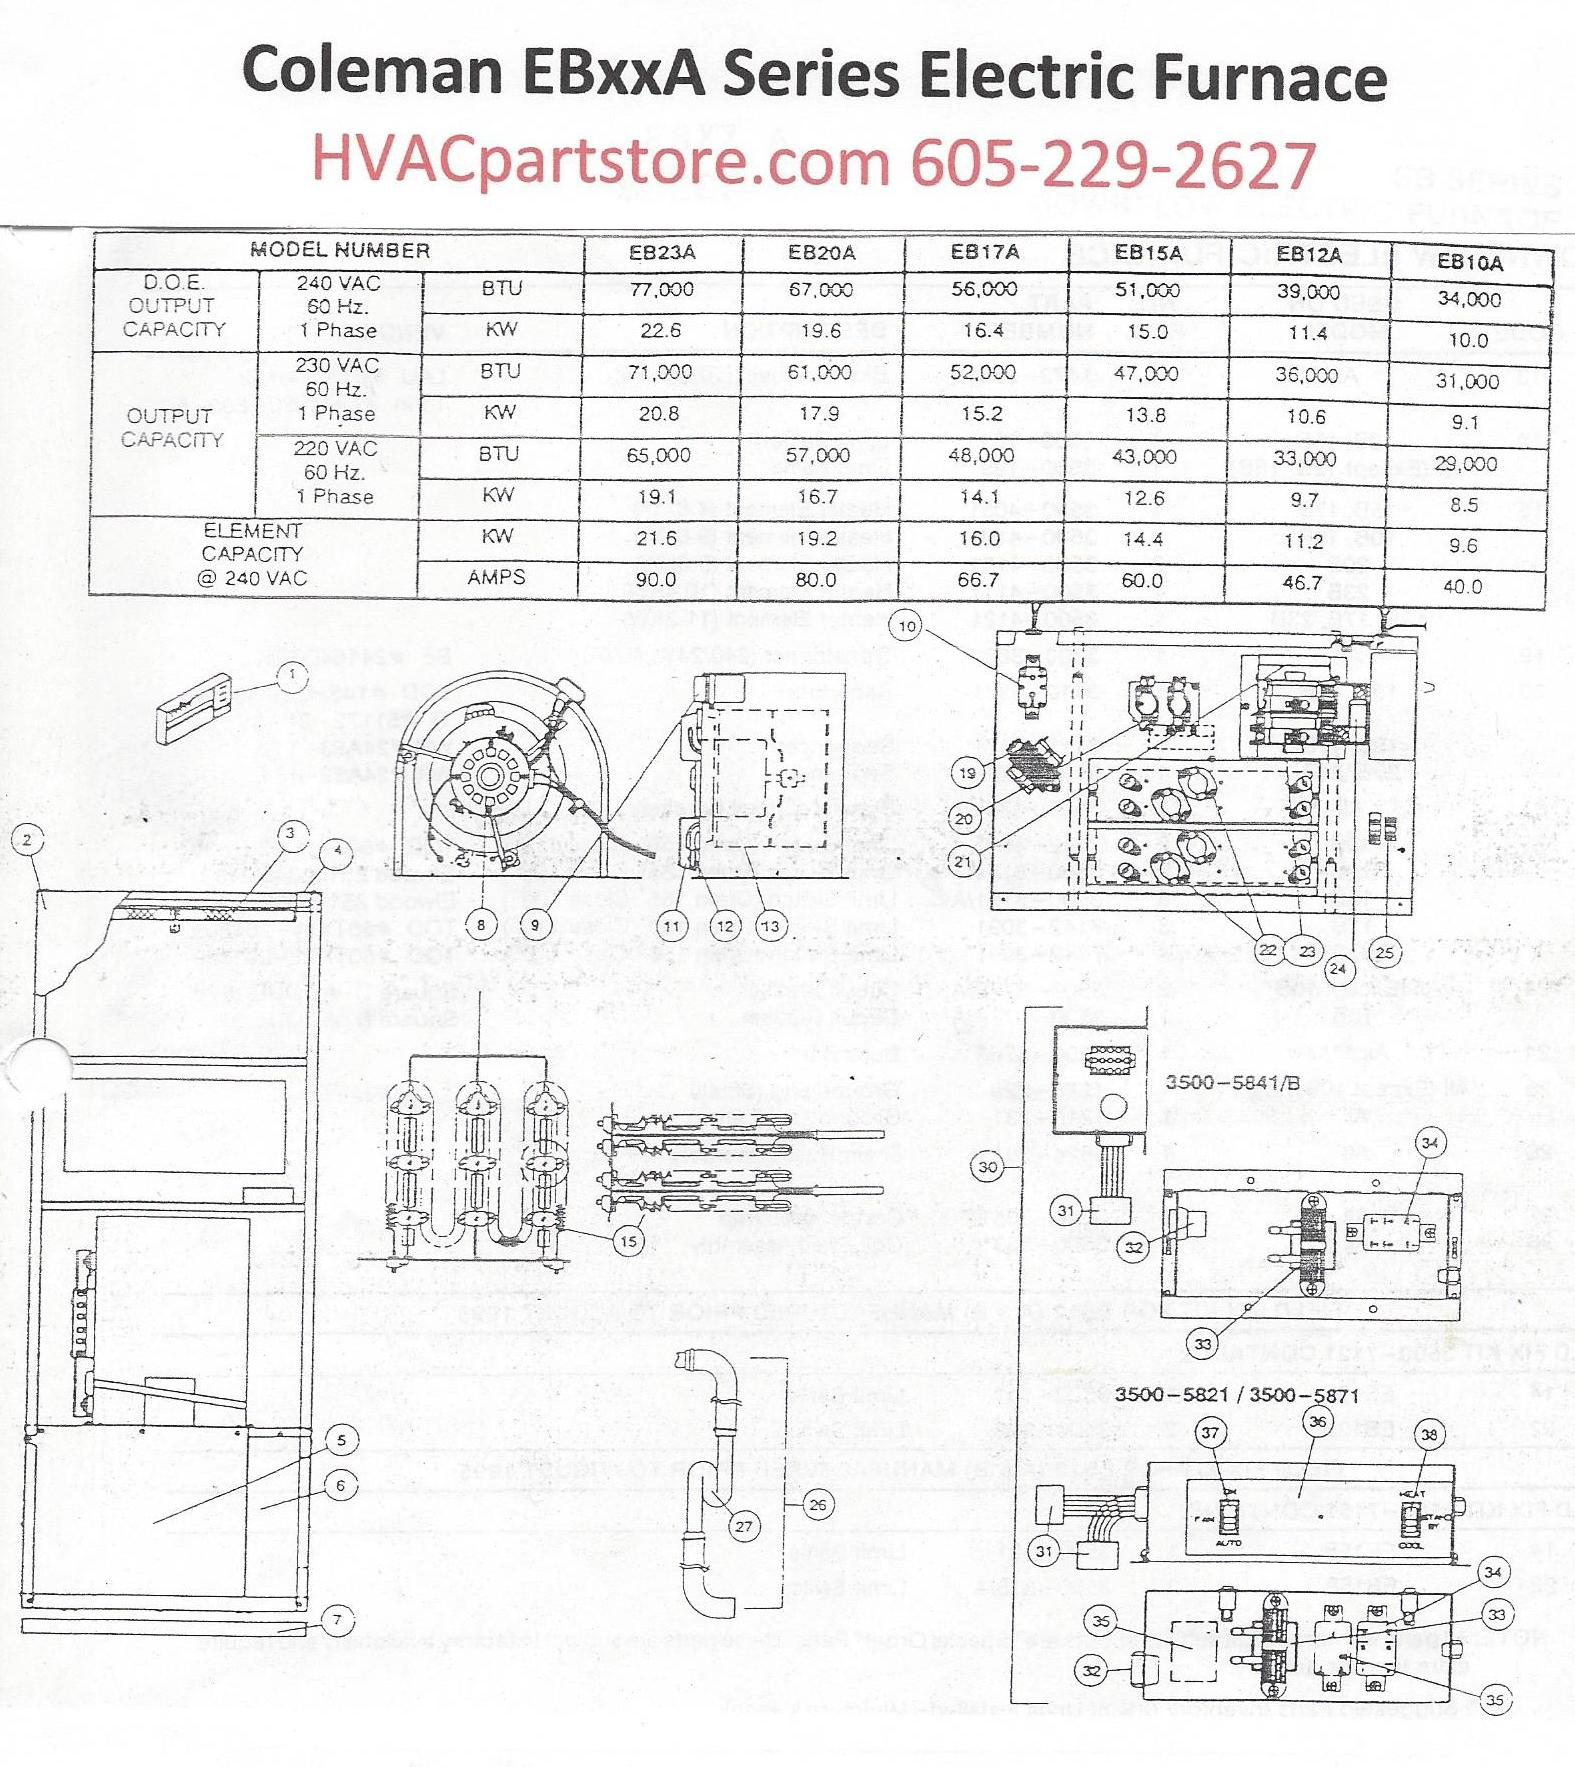 EBxxASeriesDiagram_c7cdb927 6f60 4af3 9dea 1282aefef865?1786439620719197786 eb12a coleman electric furnace parts hvacpartstore electric furnace sequencer wiring diagram at mifinder.co